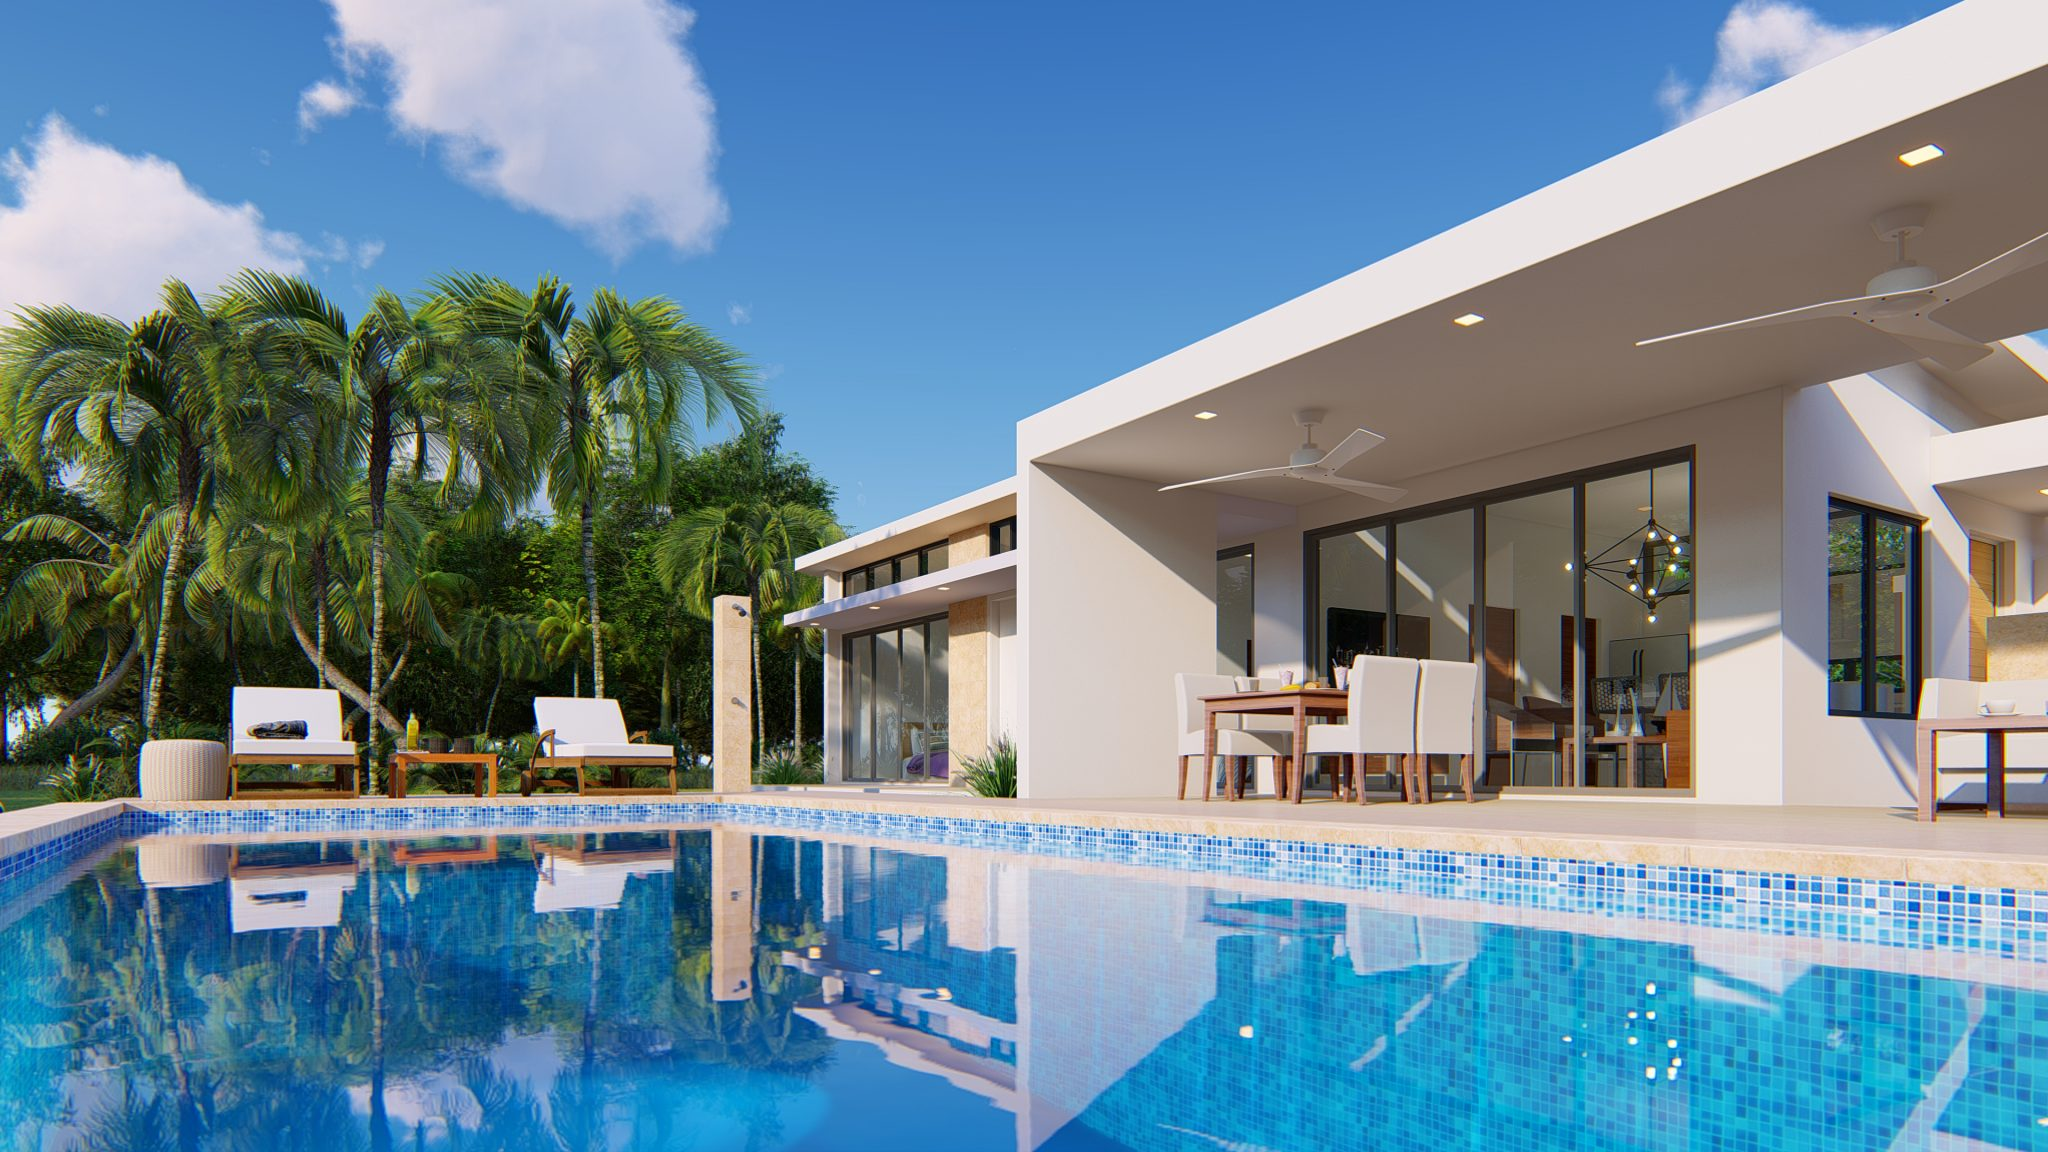 2 Bedroom Contemporary Design Villa Sale Sosua Dominican Republic